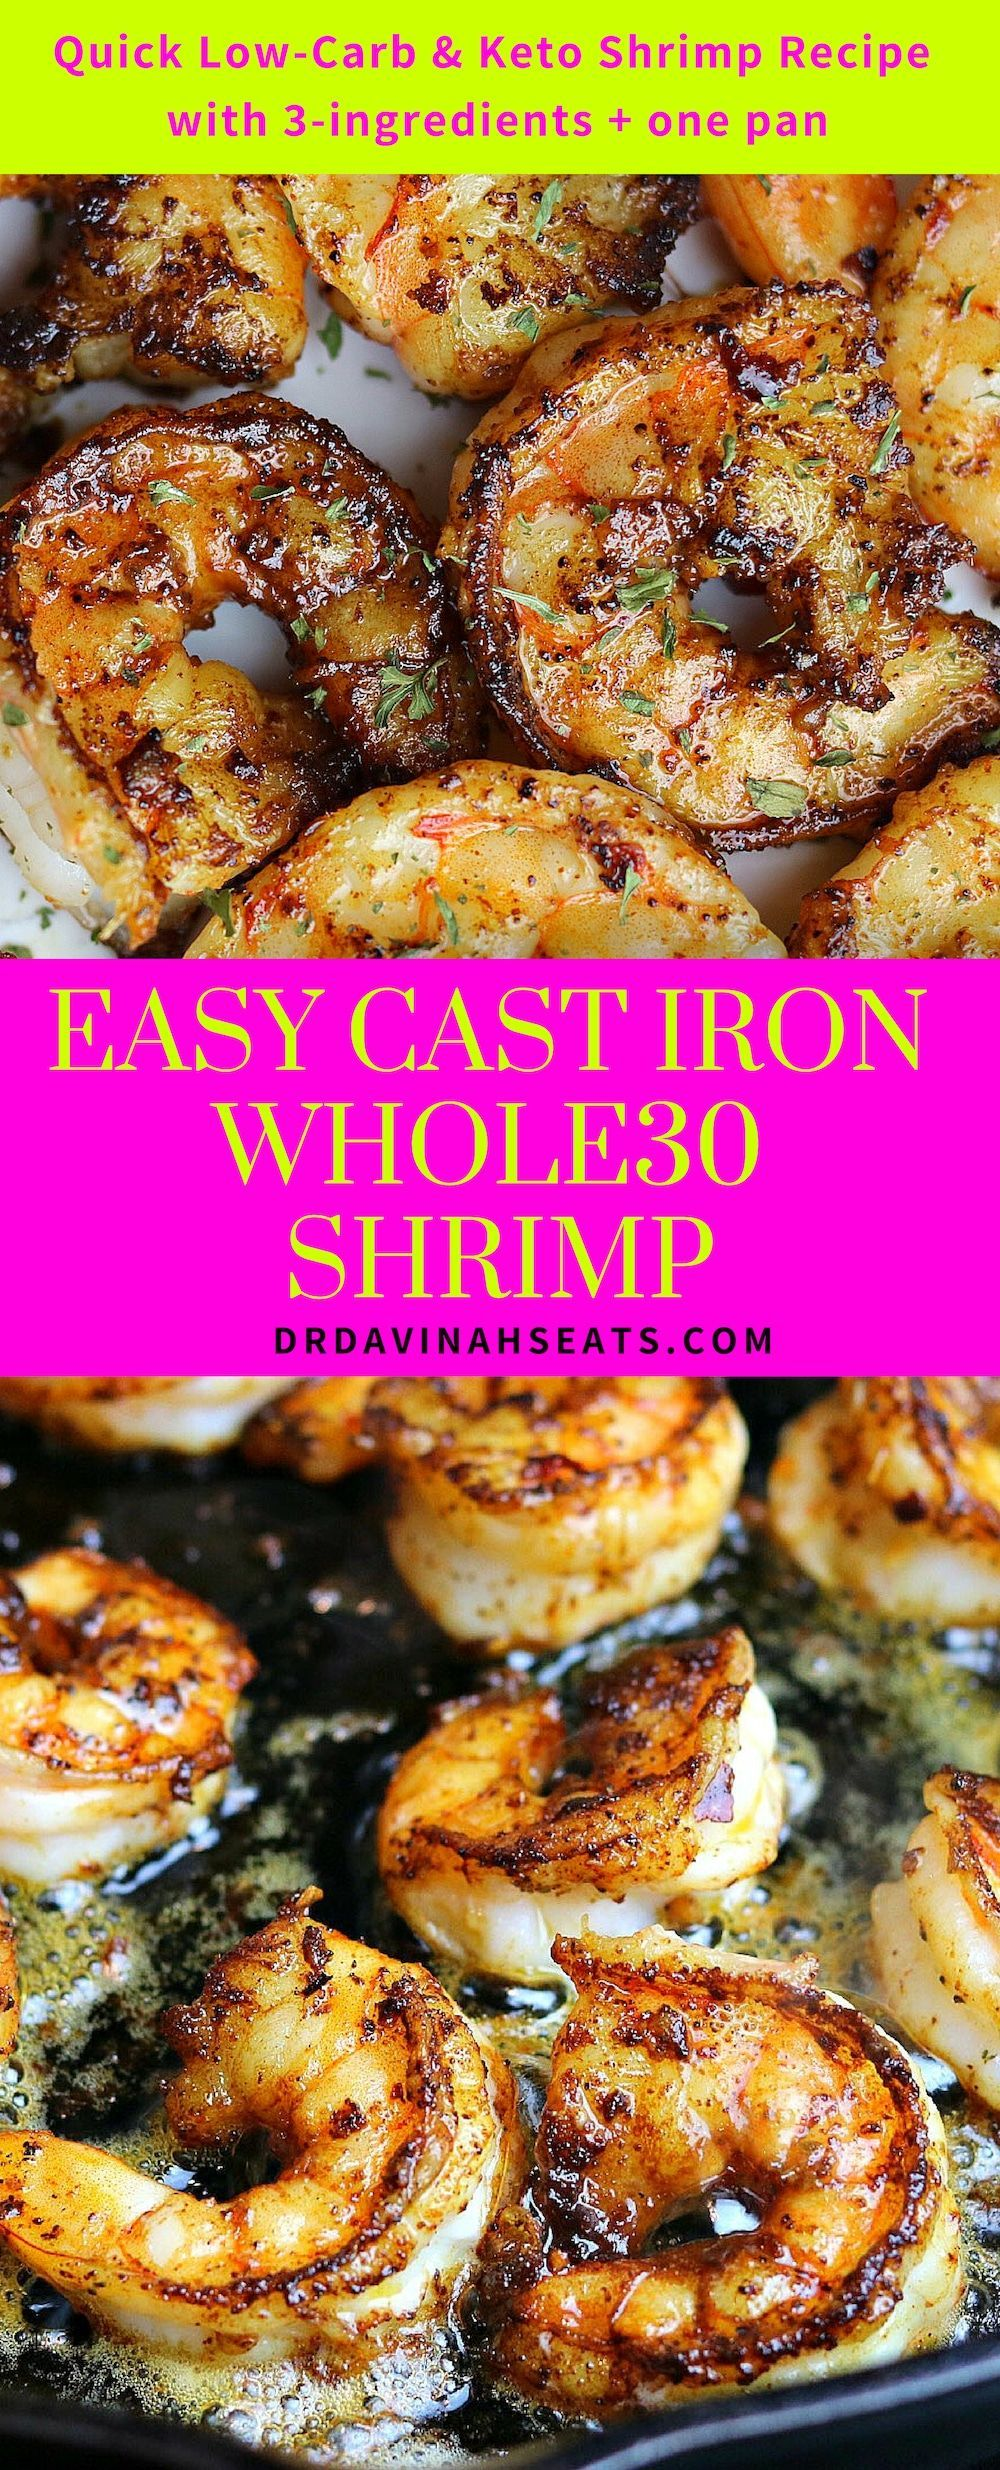 Easy Cast Iron Whole30 Shrimp  Dr Davinahs Eats  A Whole30 Shrimp recipe that requires just 3 ingredients and one cast iron pan Includes tips for g